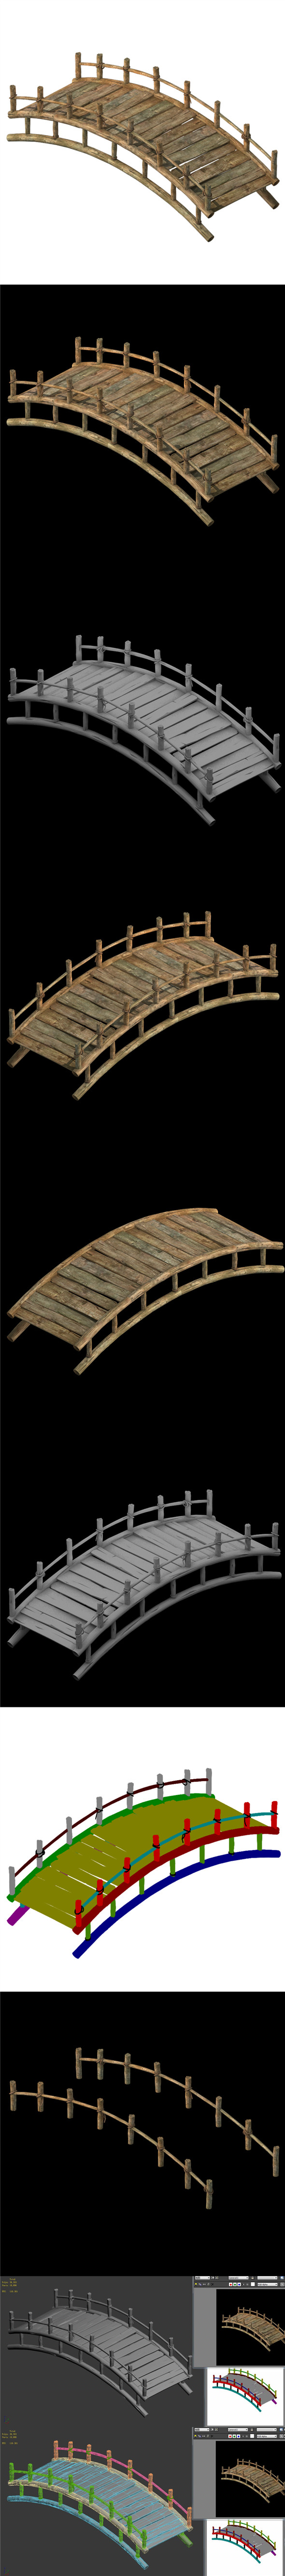 Wooden Buildings - Wooden Bridge 032 - 3DOcean Item for Sale